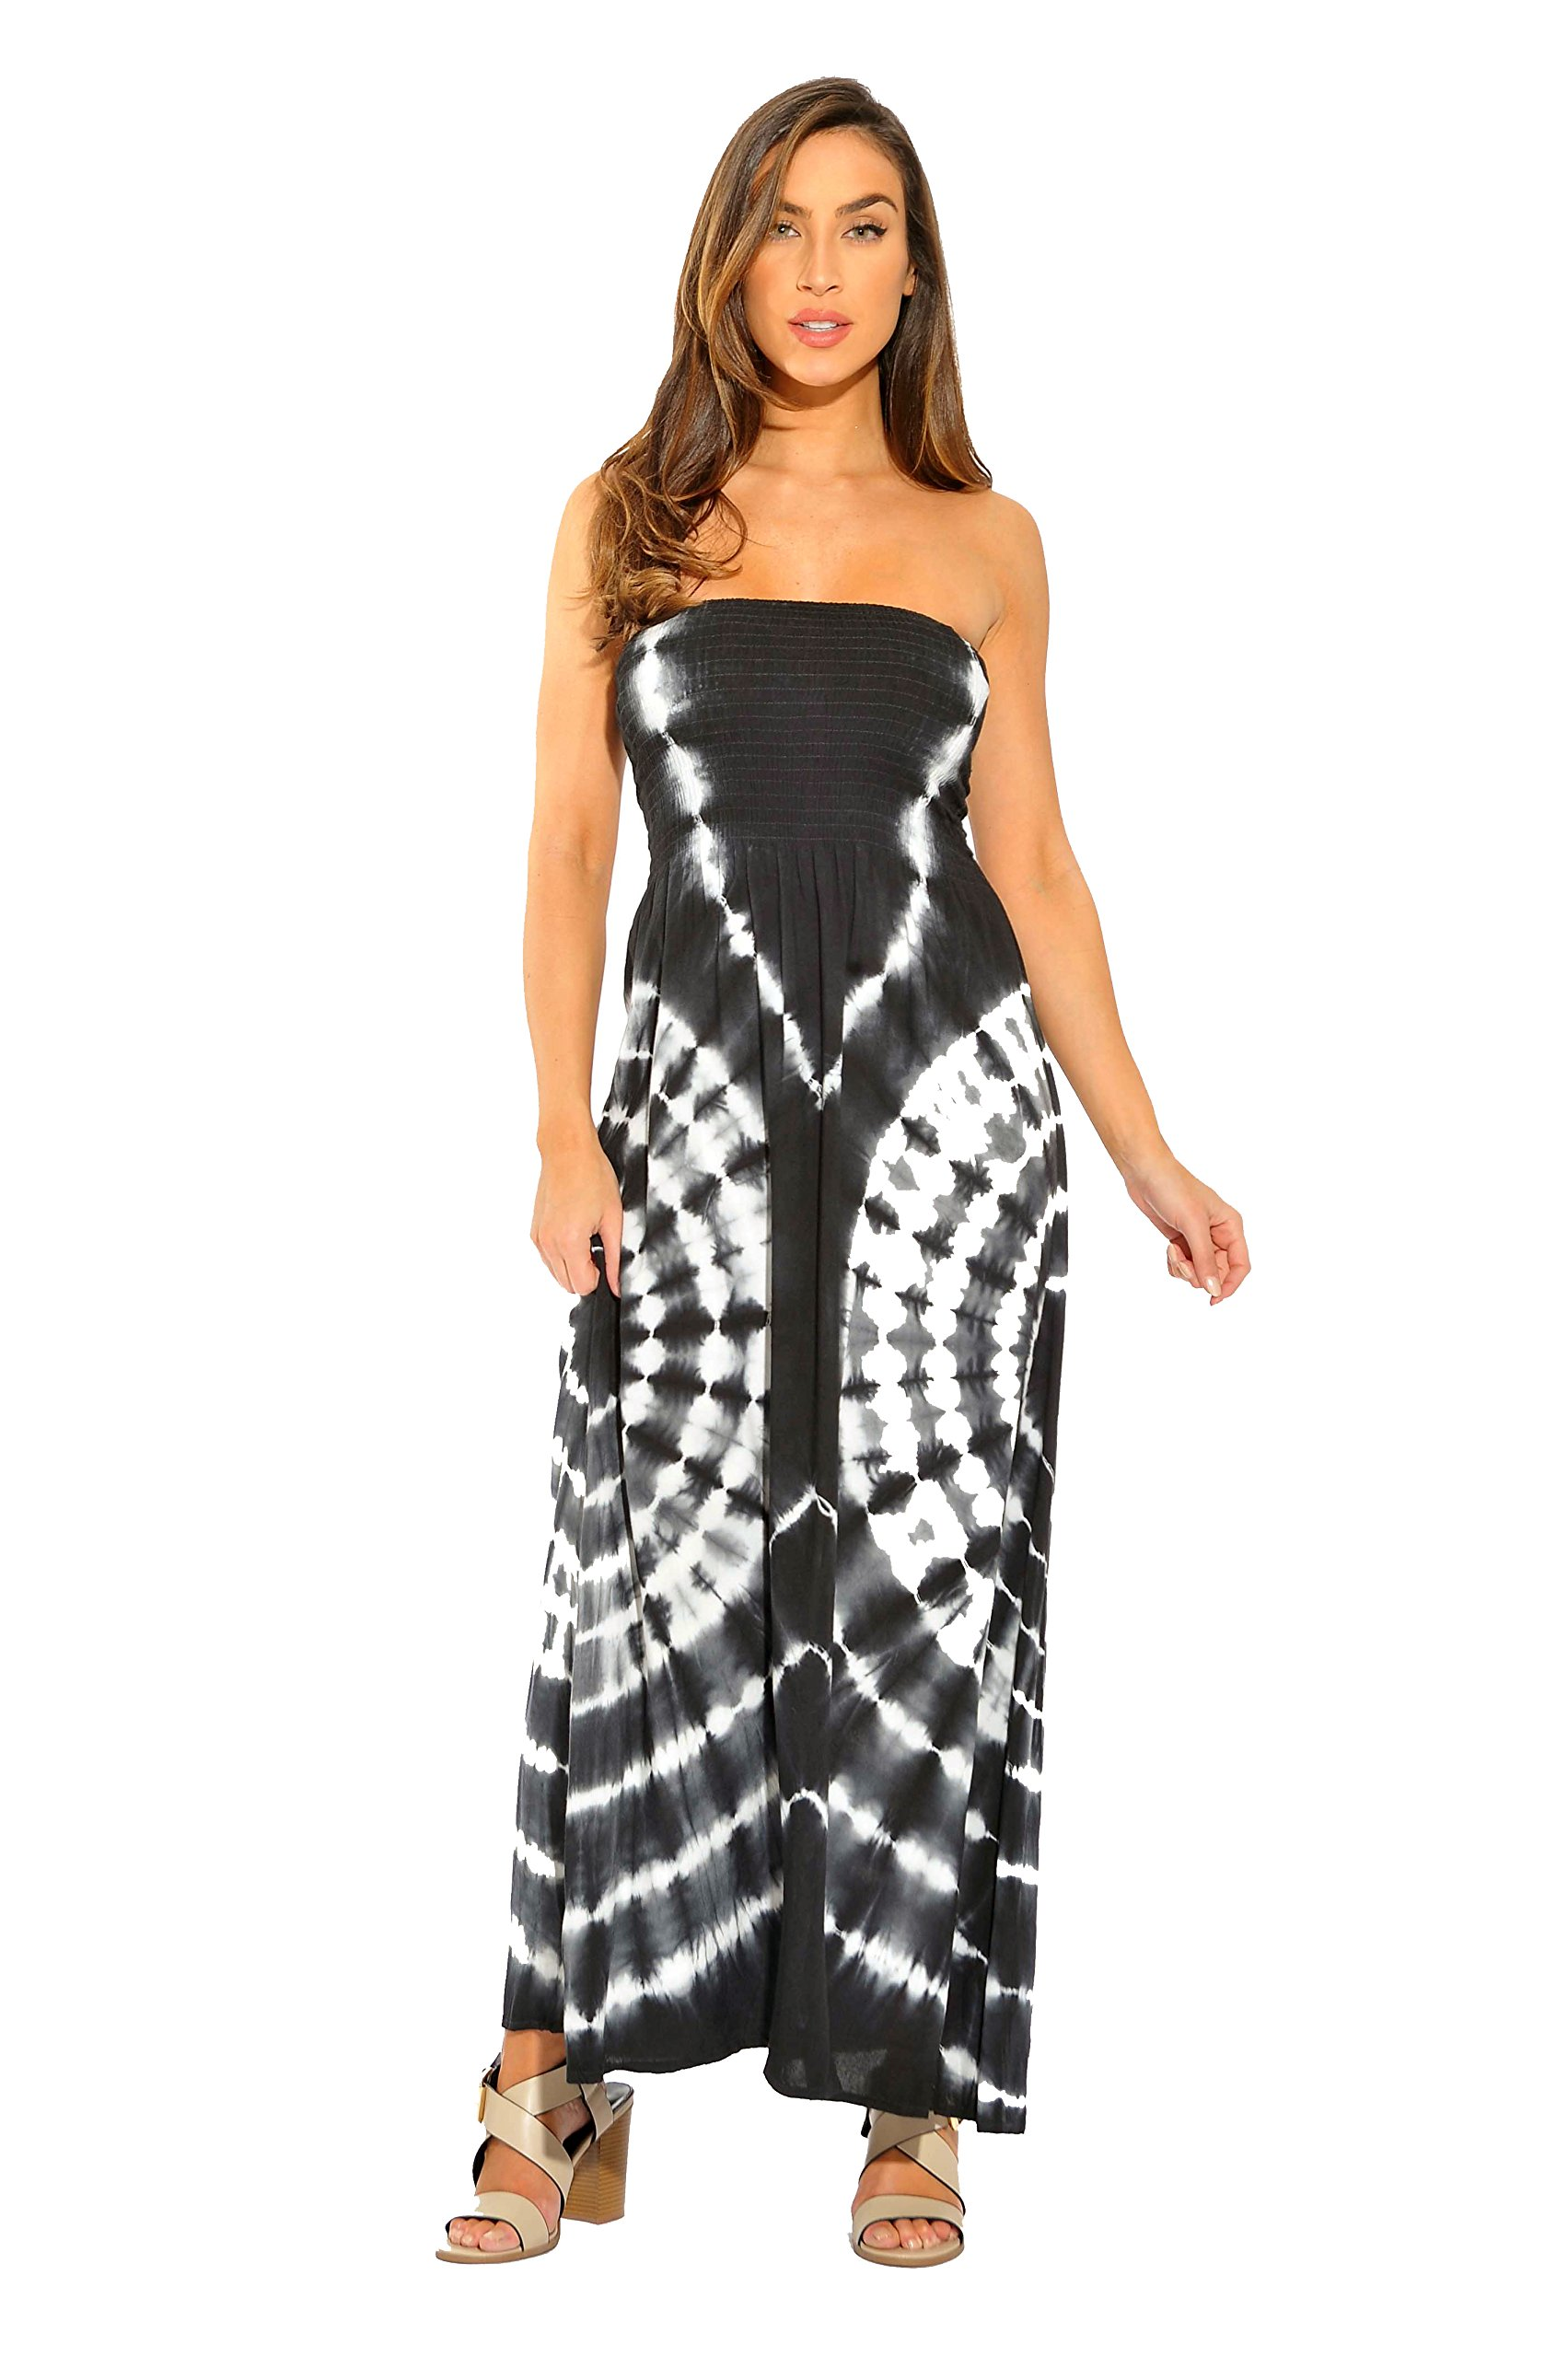 Riviera Sun 21611-BW-2X Strapless Tube Maxi Dress/Summer Dresses